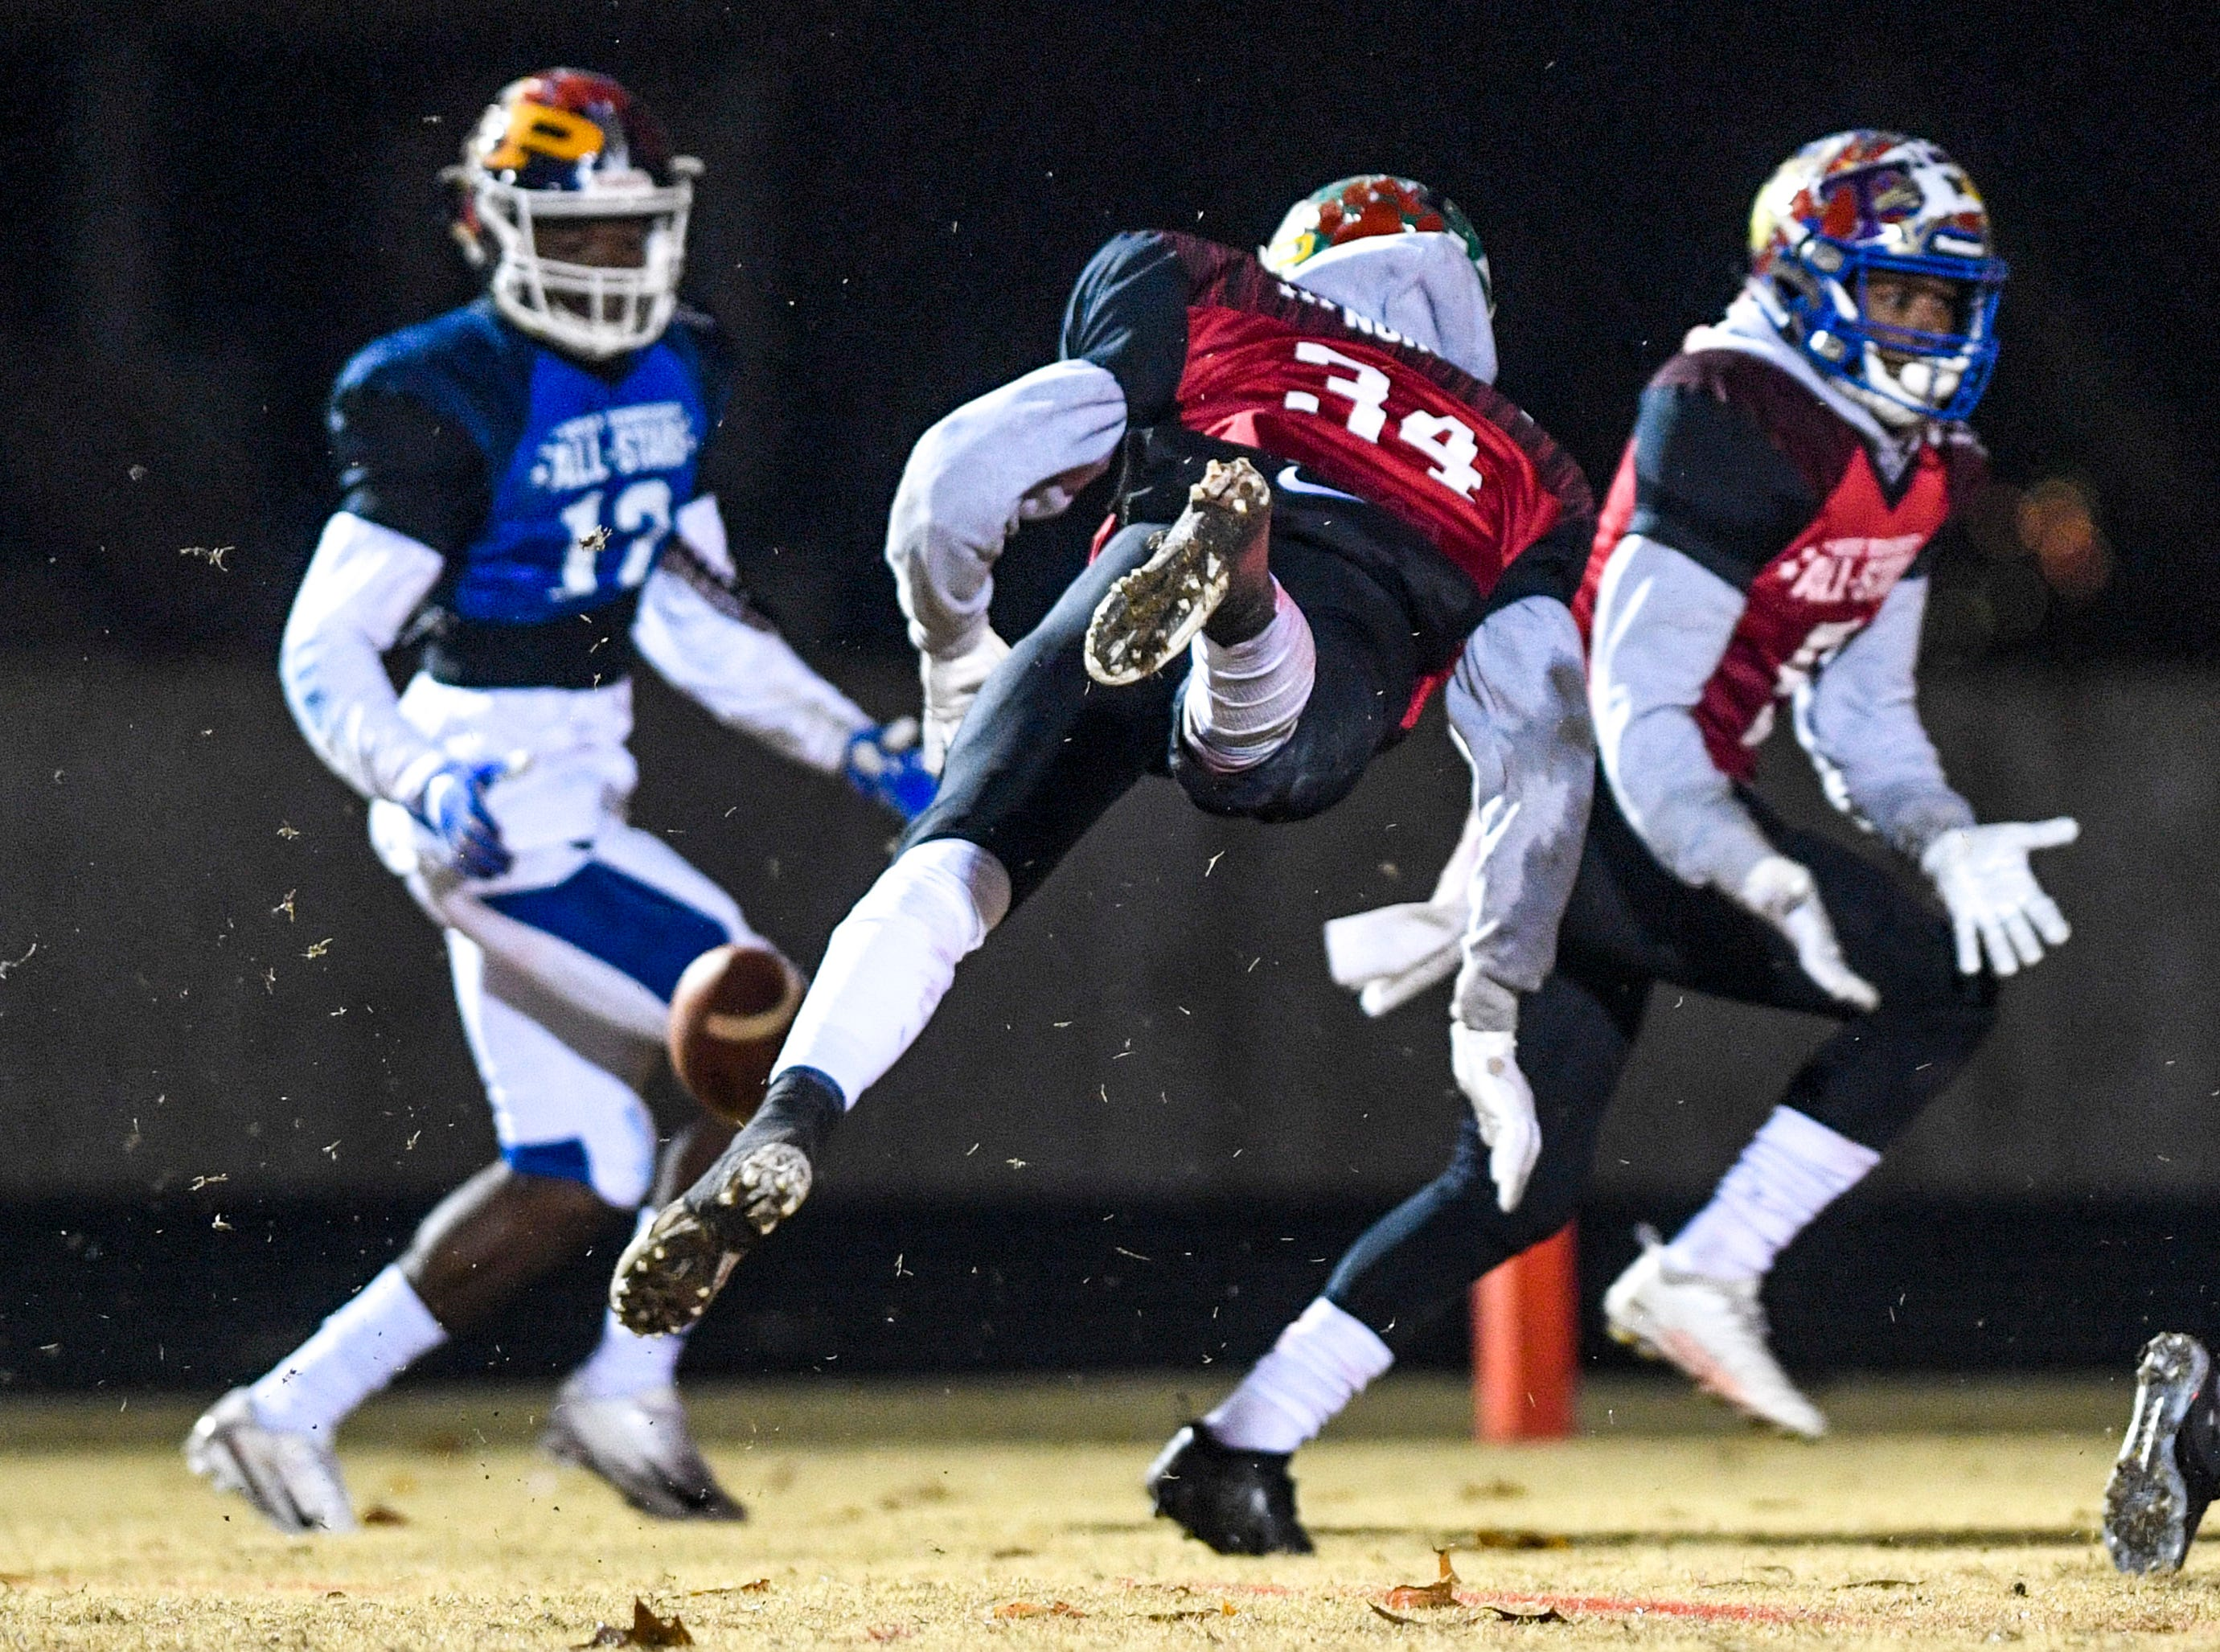 Bolivar's CJ McMahan (34) leaps out to block a pass during the West Tennessee All-Star football game at University School of Jackson in Jackson, Tenn., on Friday, Dec. 7, 2018.